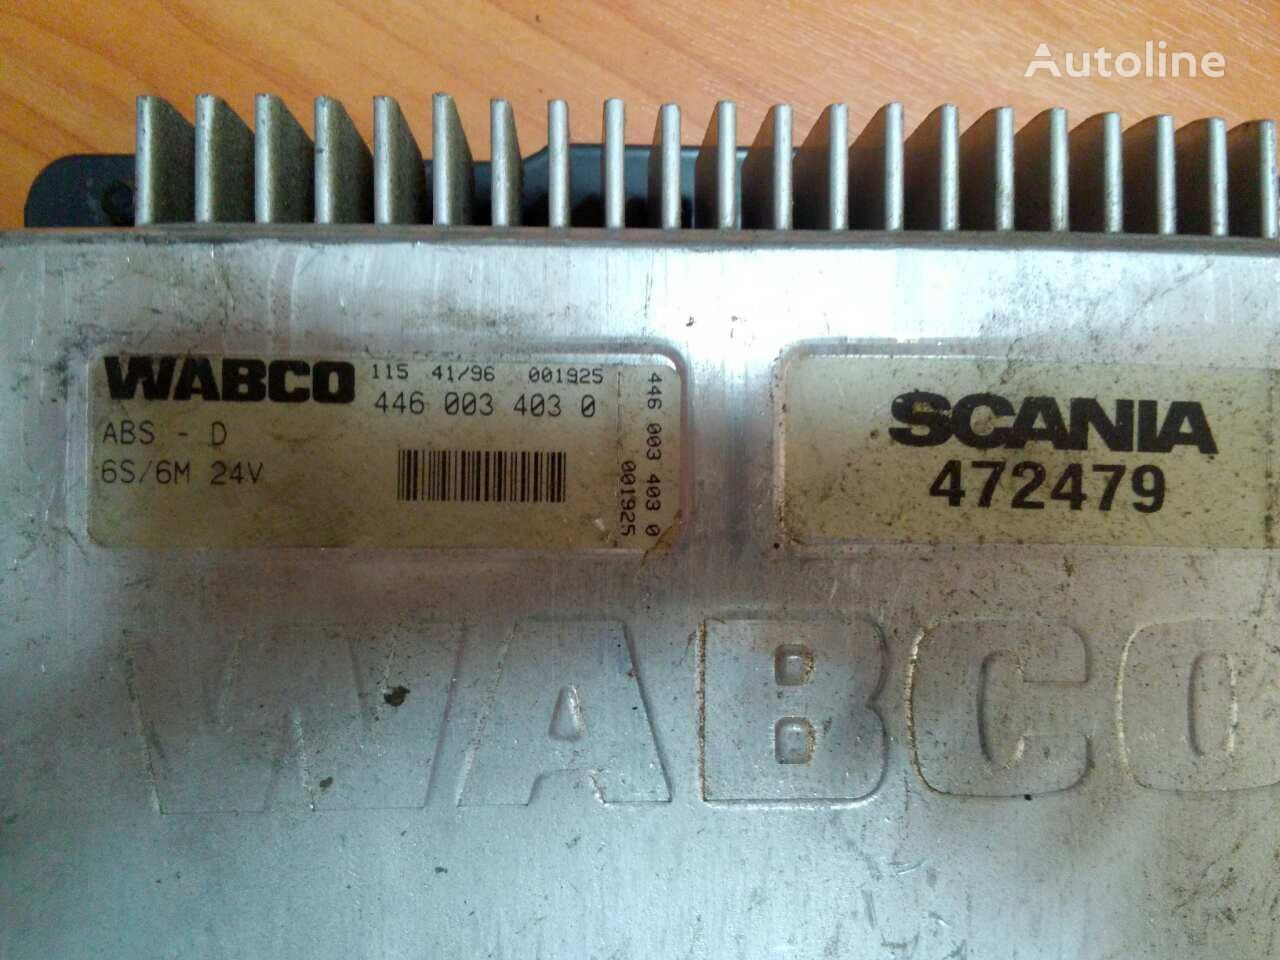 SCANIA 4460034030 WABCO control unit for SCANIA 124 truck